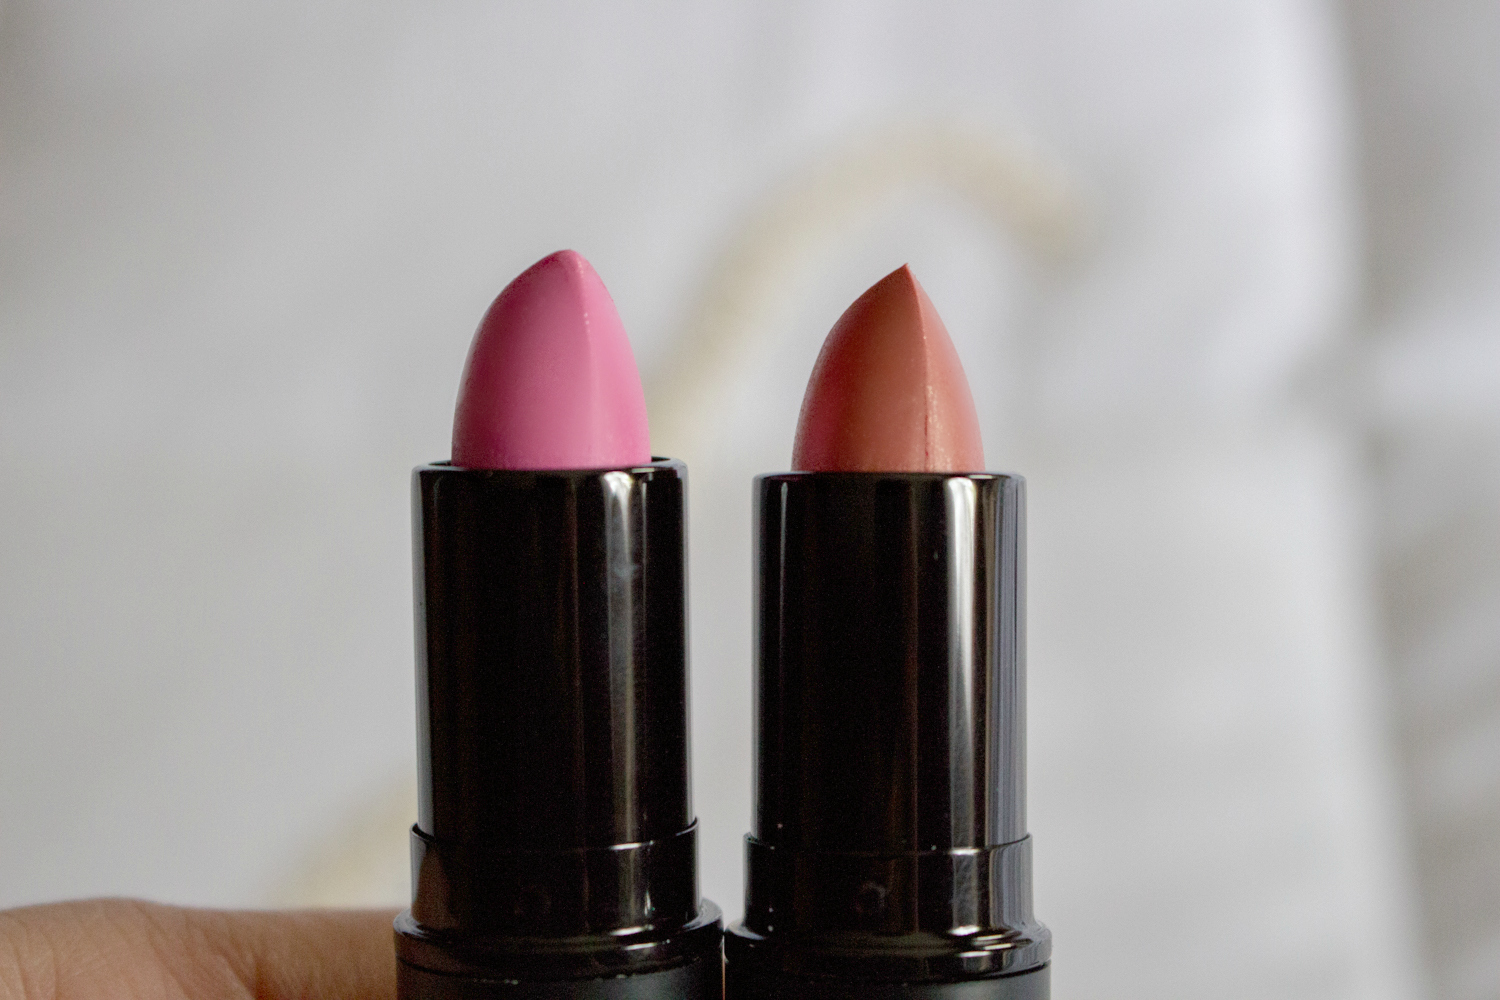 Fabulous Kismet Cosmetics made in the USA